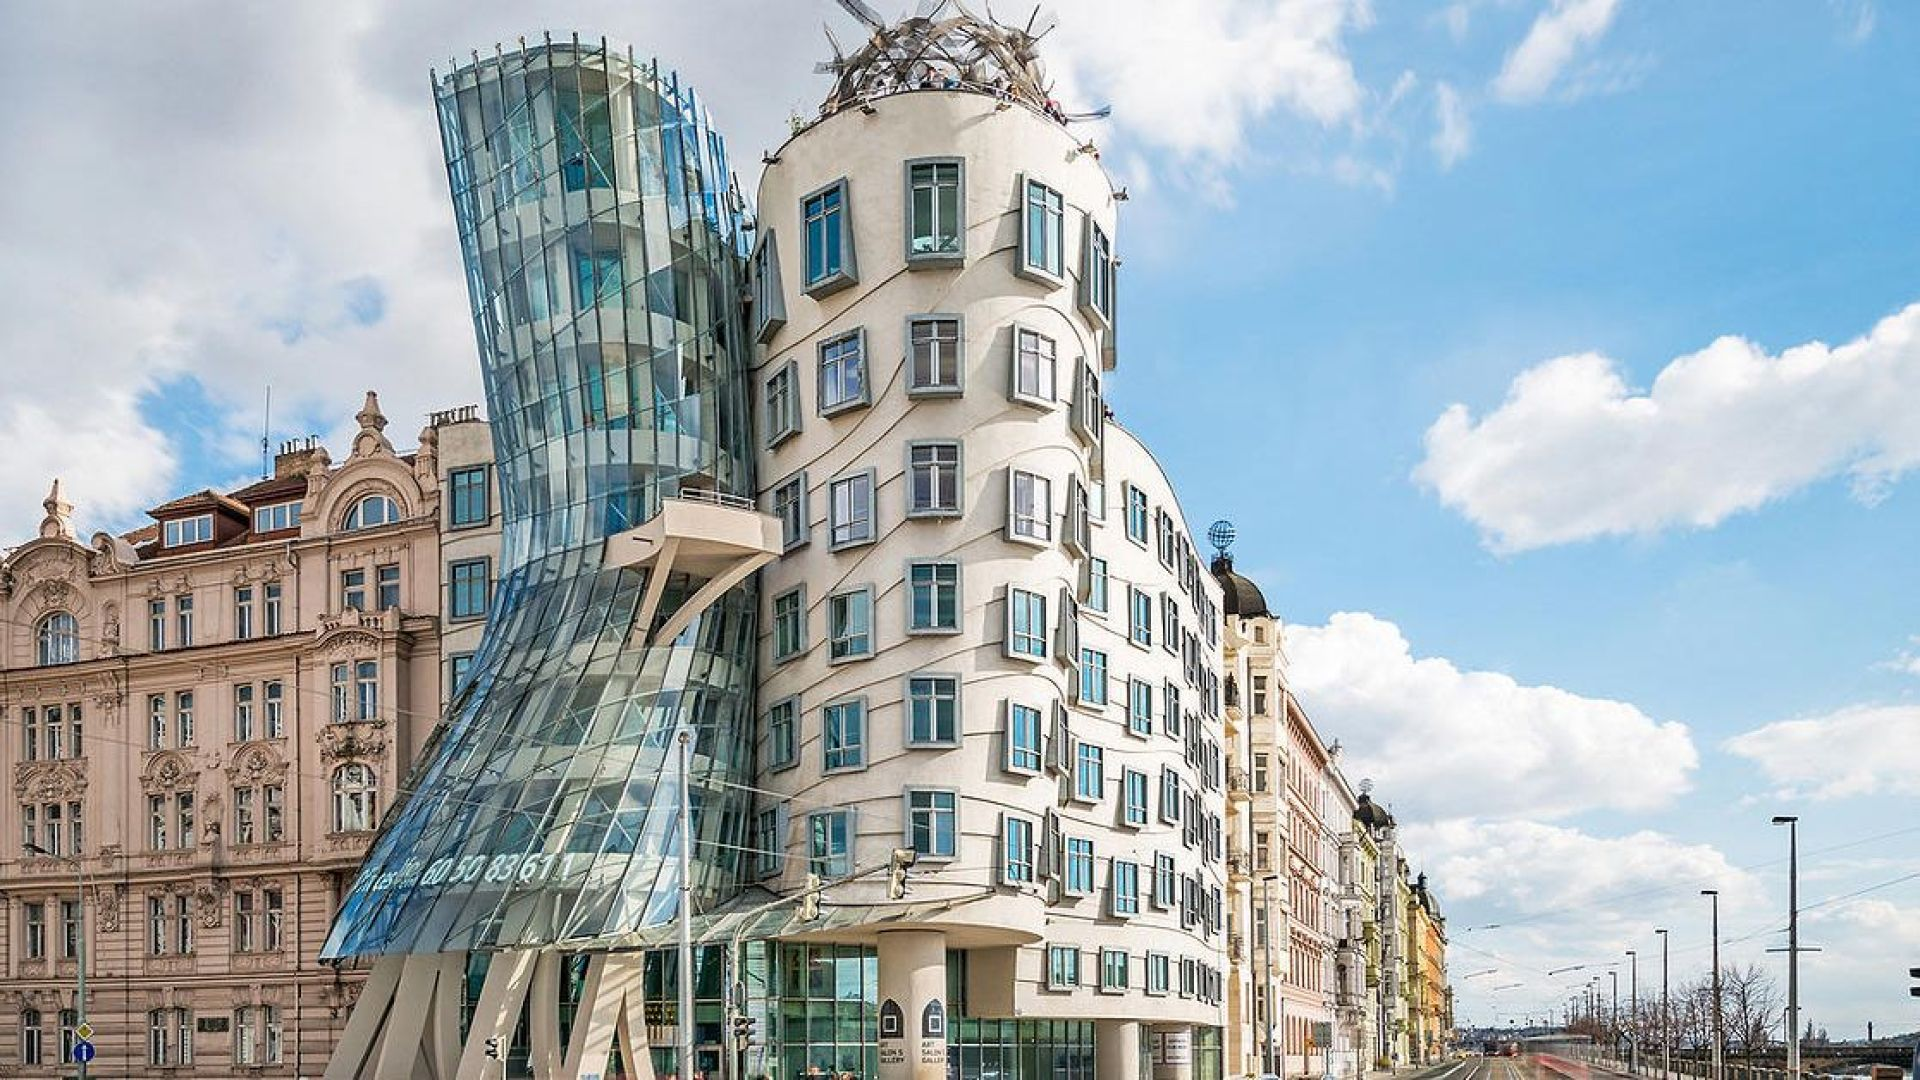 32 world-famous buildings to inspire you